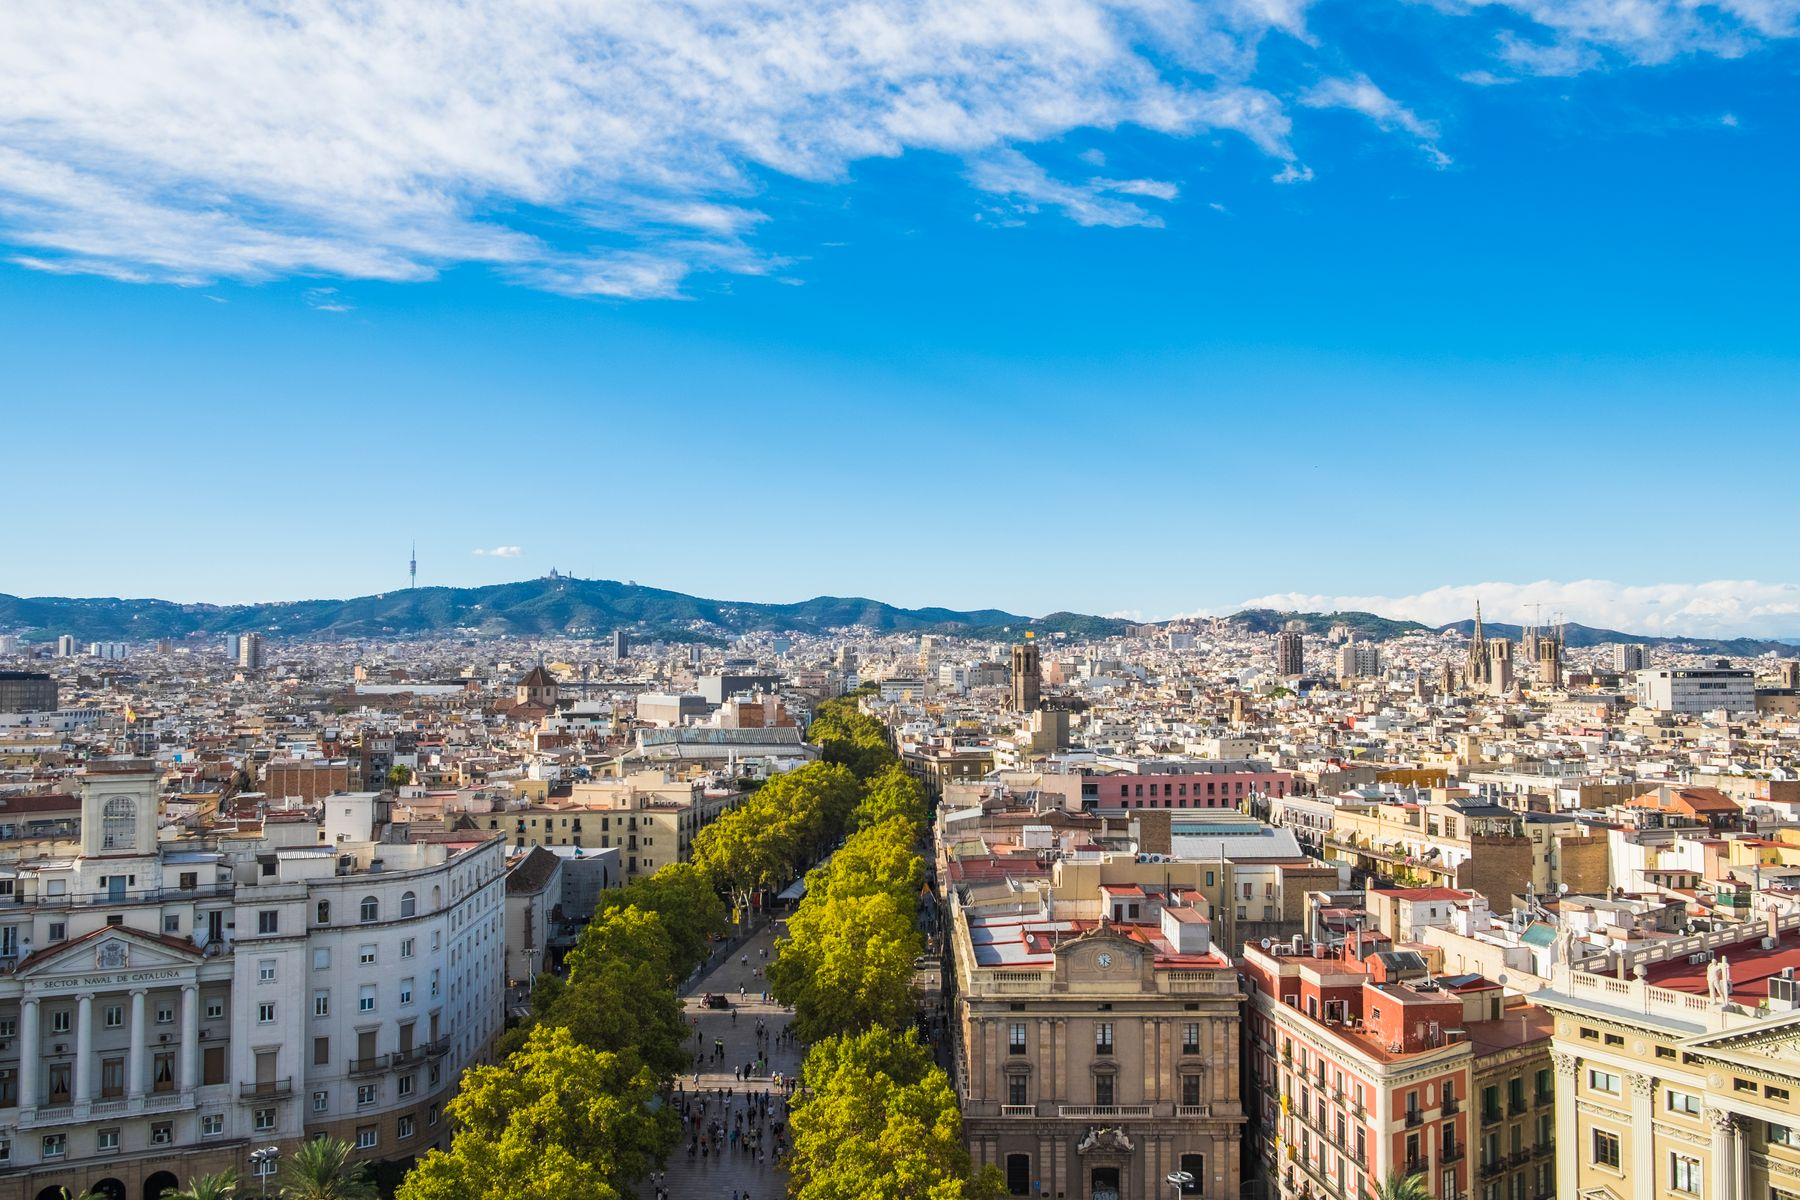 Barcelona is one of the destinations you can virtually travel to by means of travel shows on Netflix and other platforms